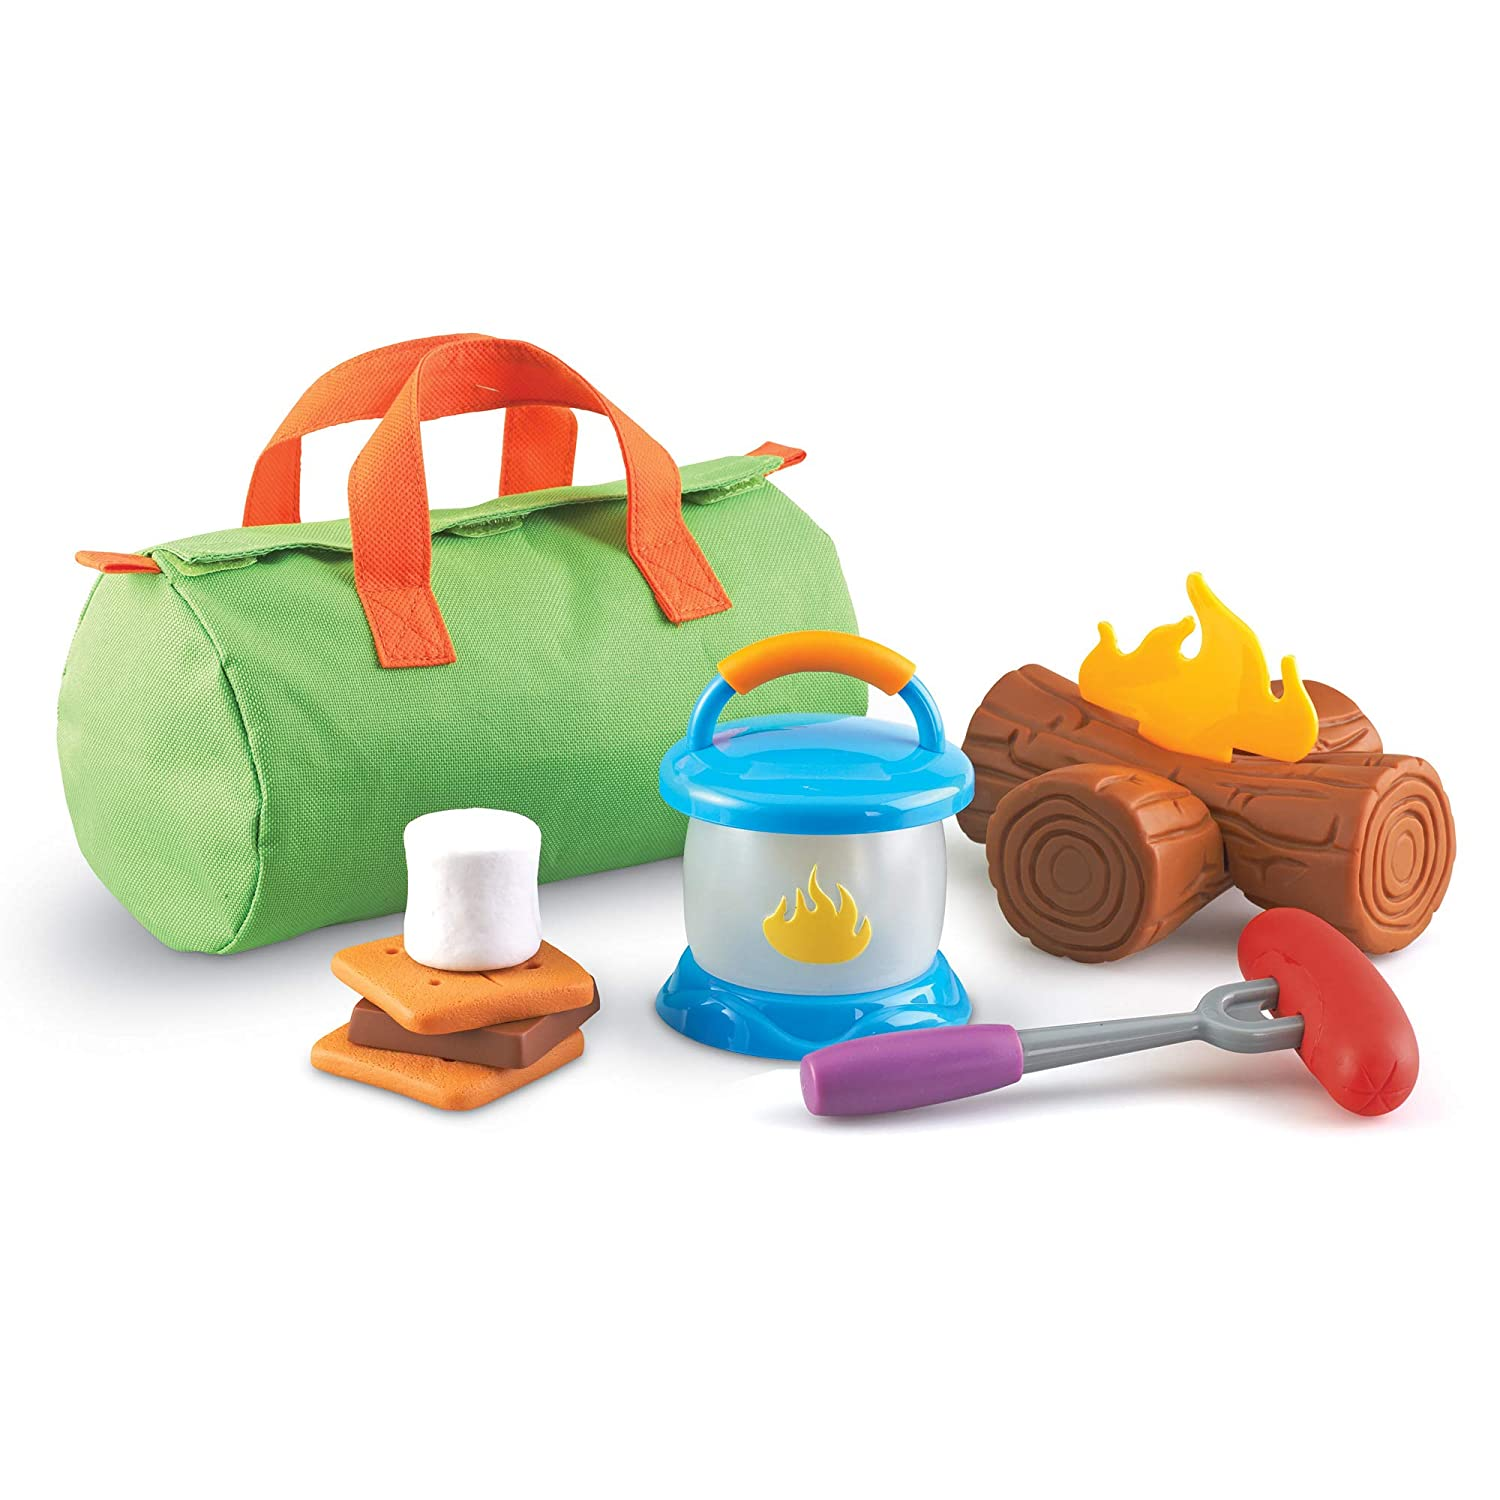 B00T83WRK6 Learning Resources New Sprouts Camp Out!, Camping and Campfire Toy, 11 Pieces, Ages 2+ 71SkH85jkRL